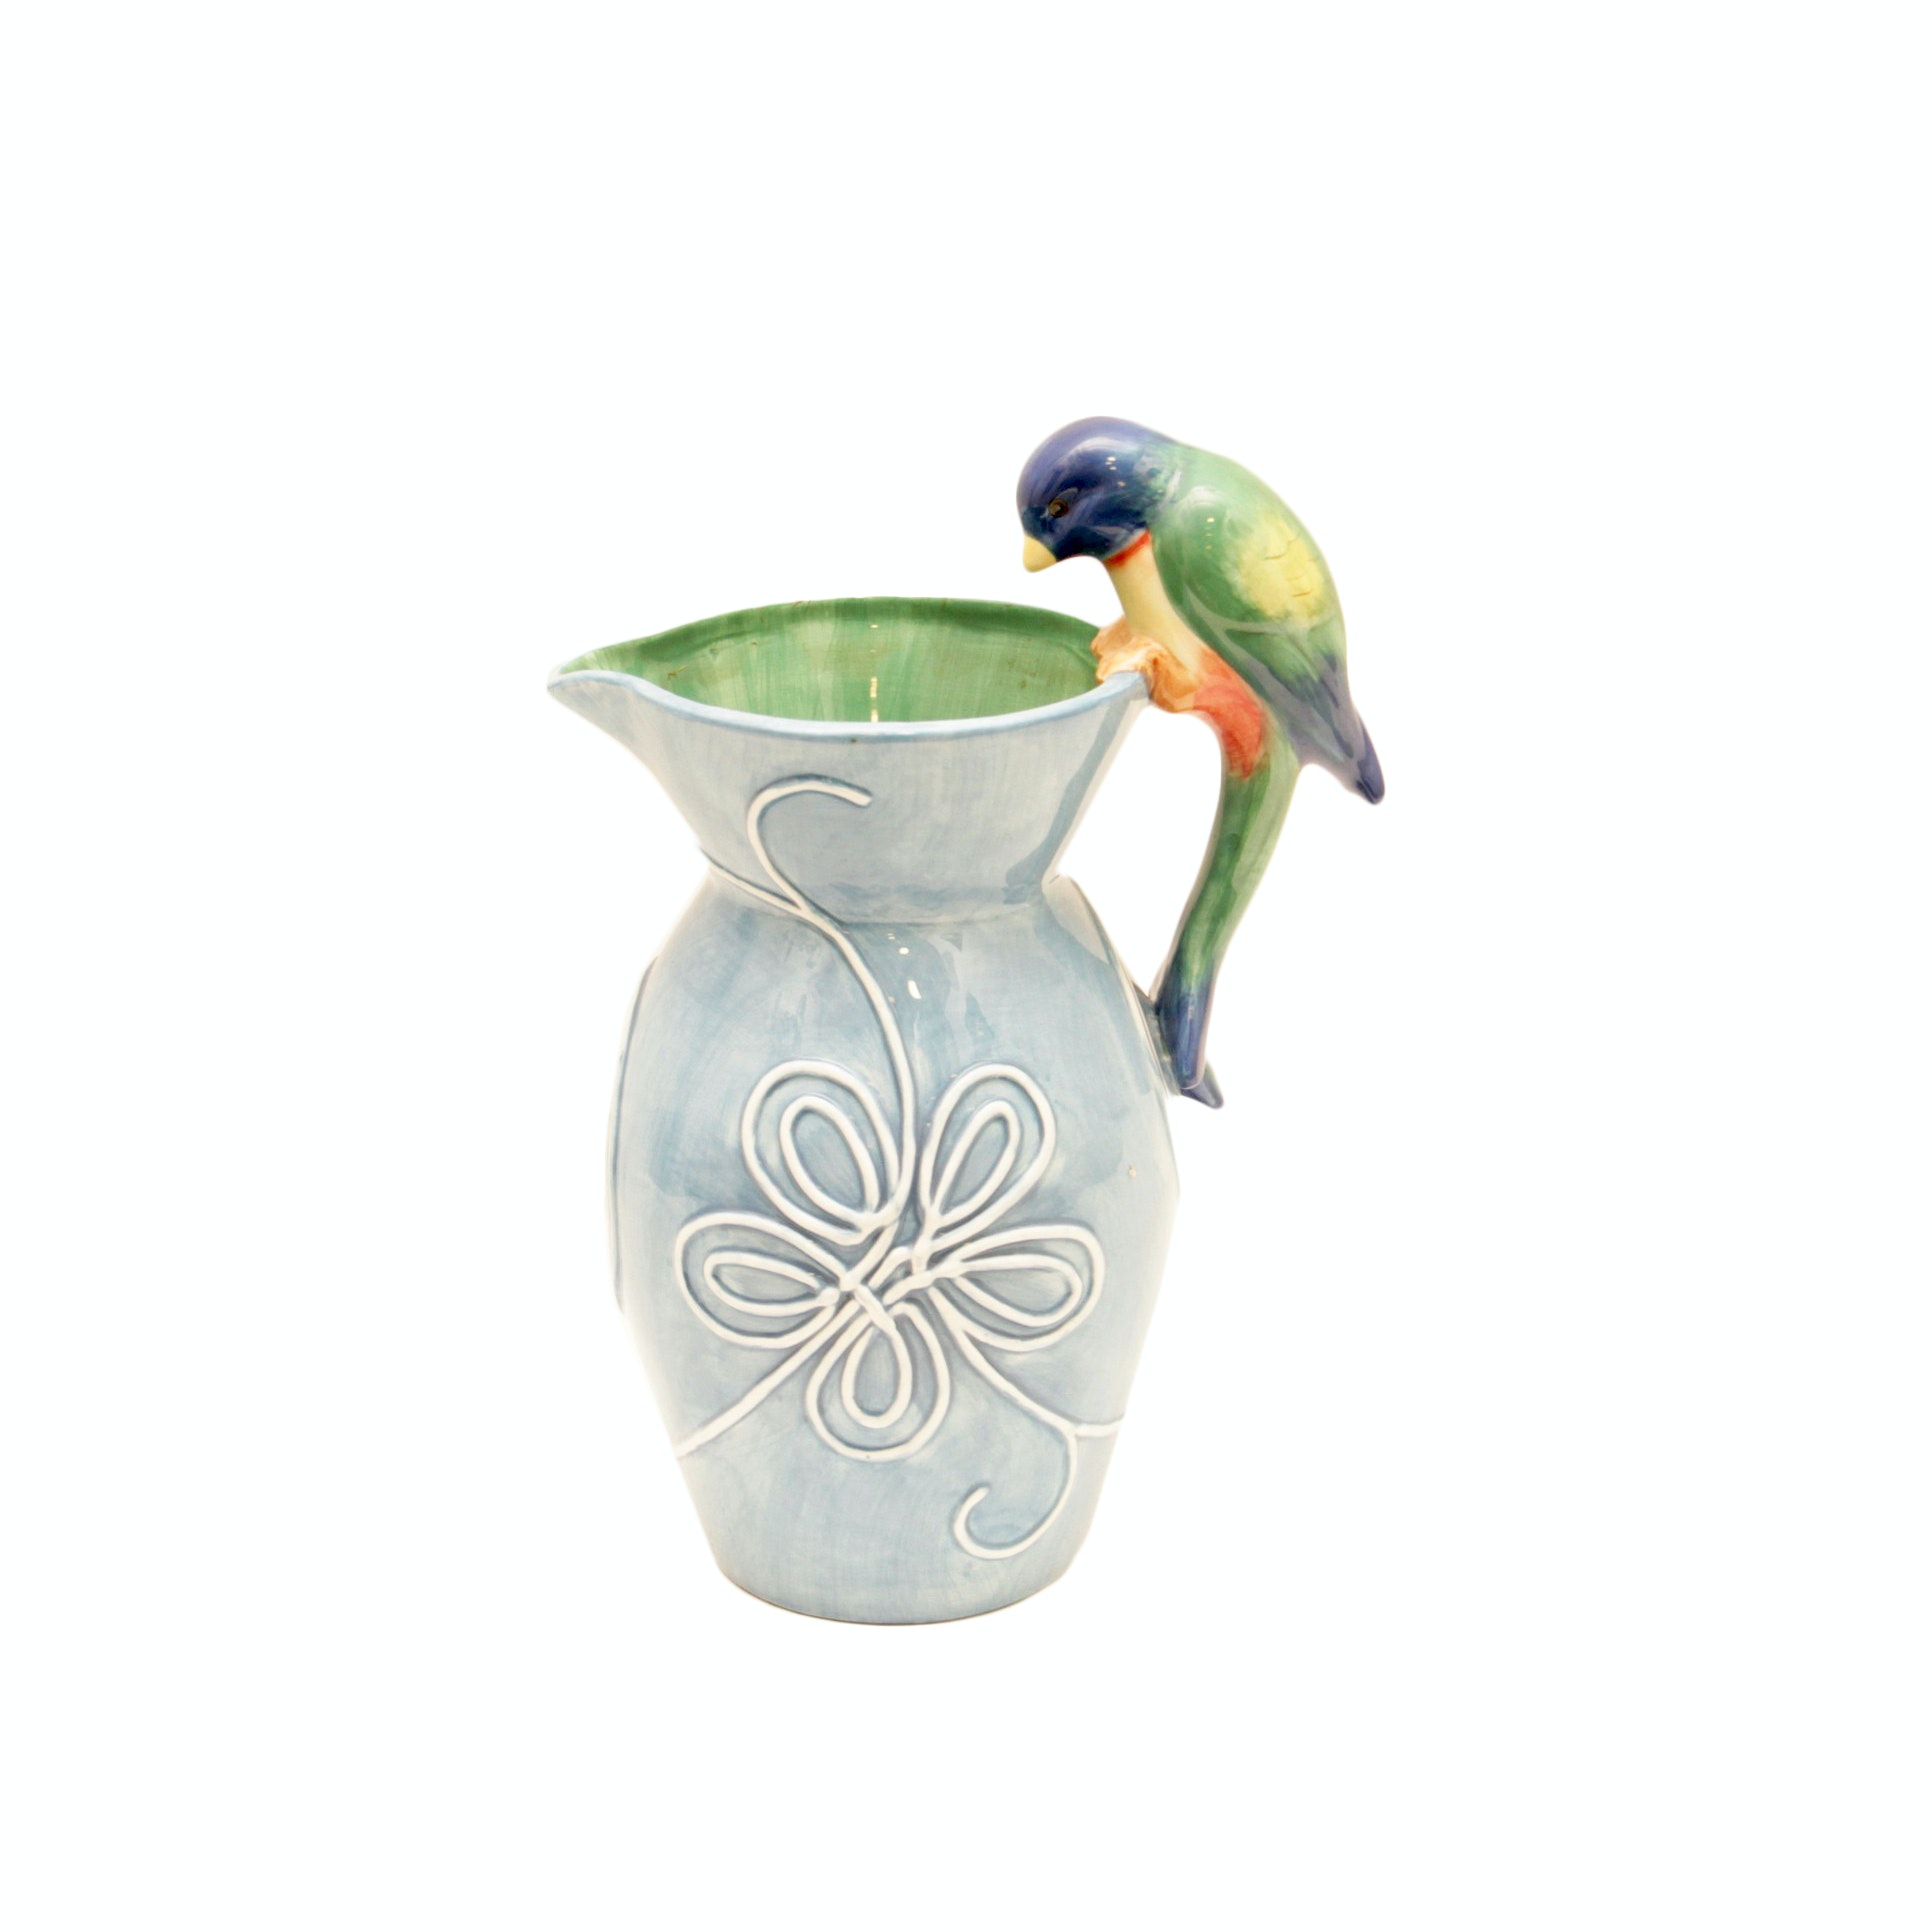 Parrot Themed Pitcher by Fitz and Floyd